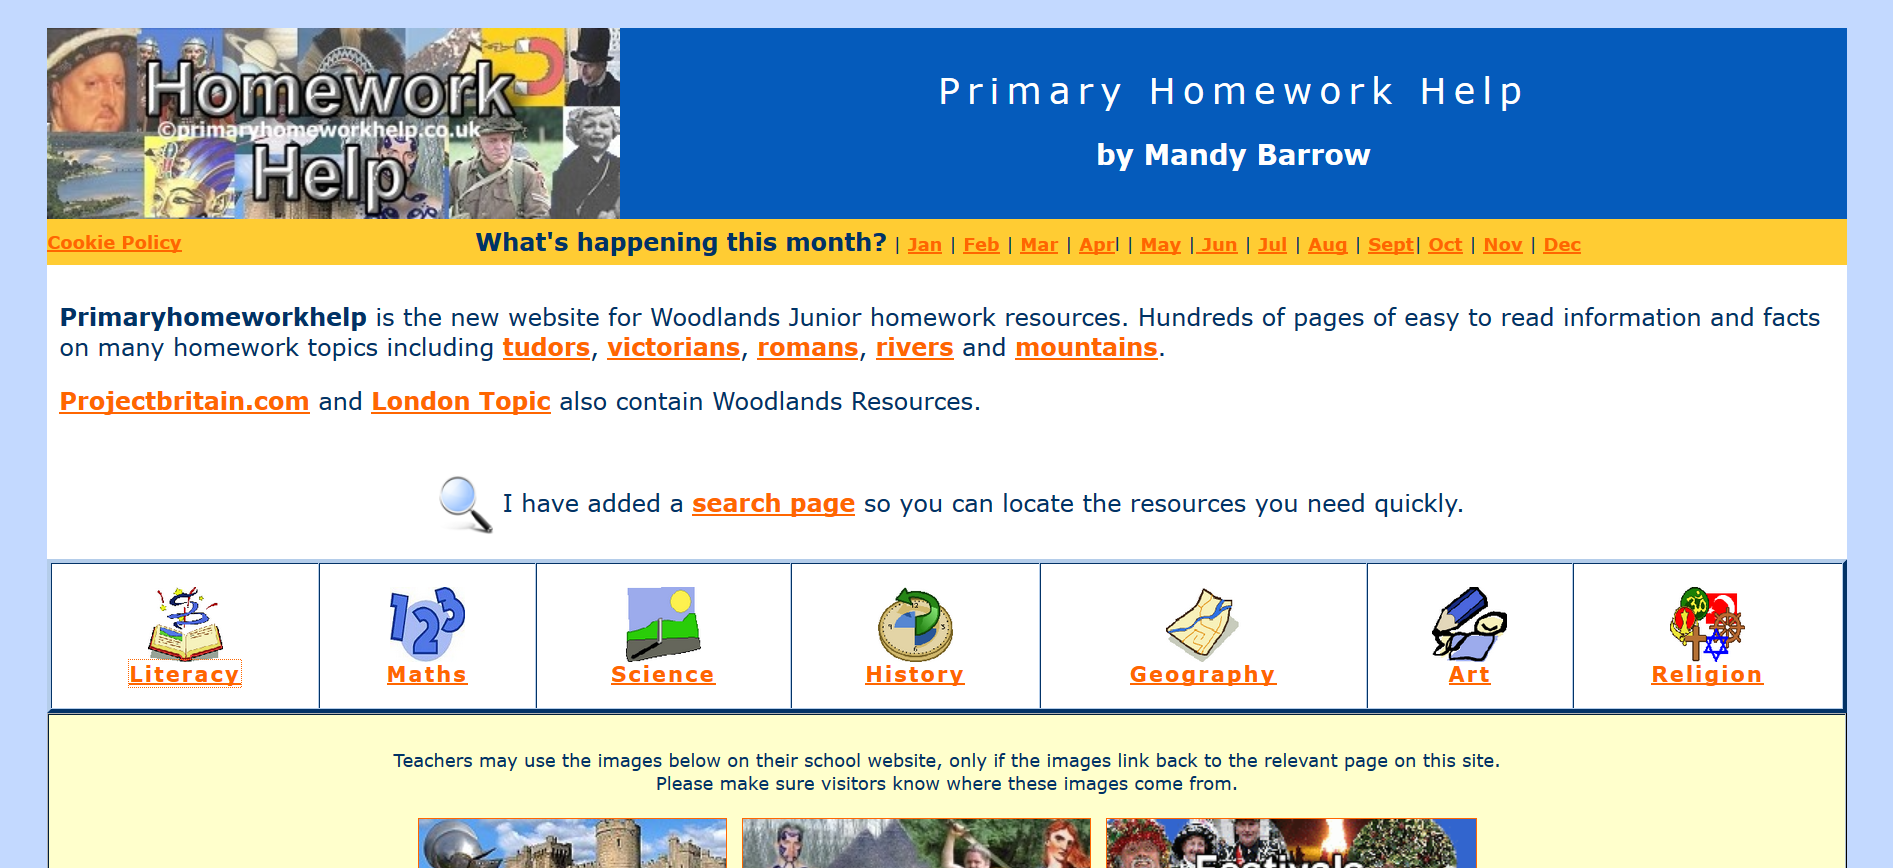 online homework help uk This is the new website for woodlands junior homework help hundreds of pages of easy to read information and facts on many homework topics including tudors, victorians, romans, ww2, mountains and rivers.